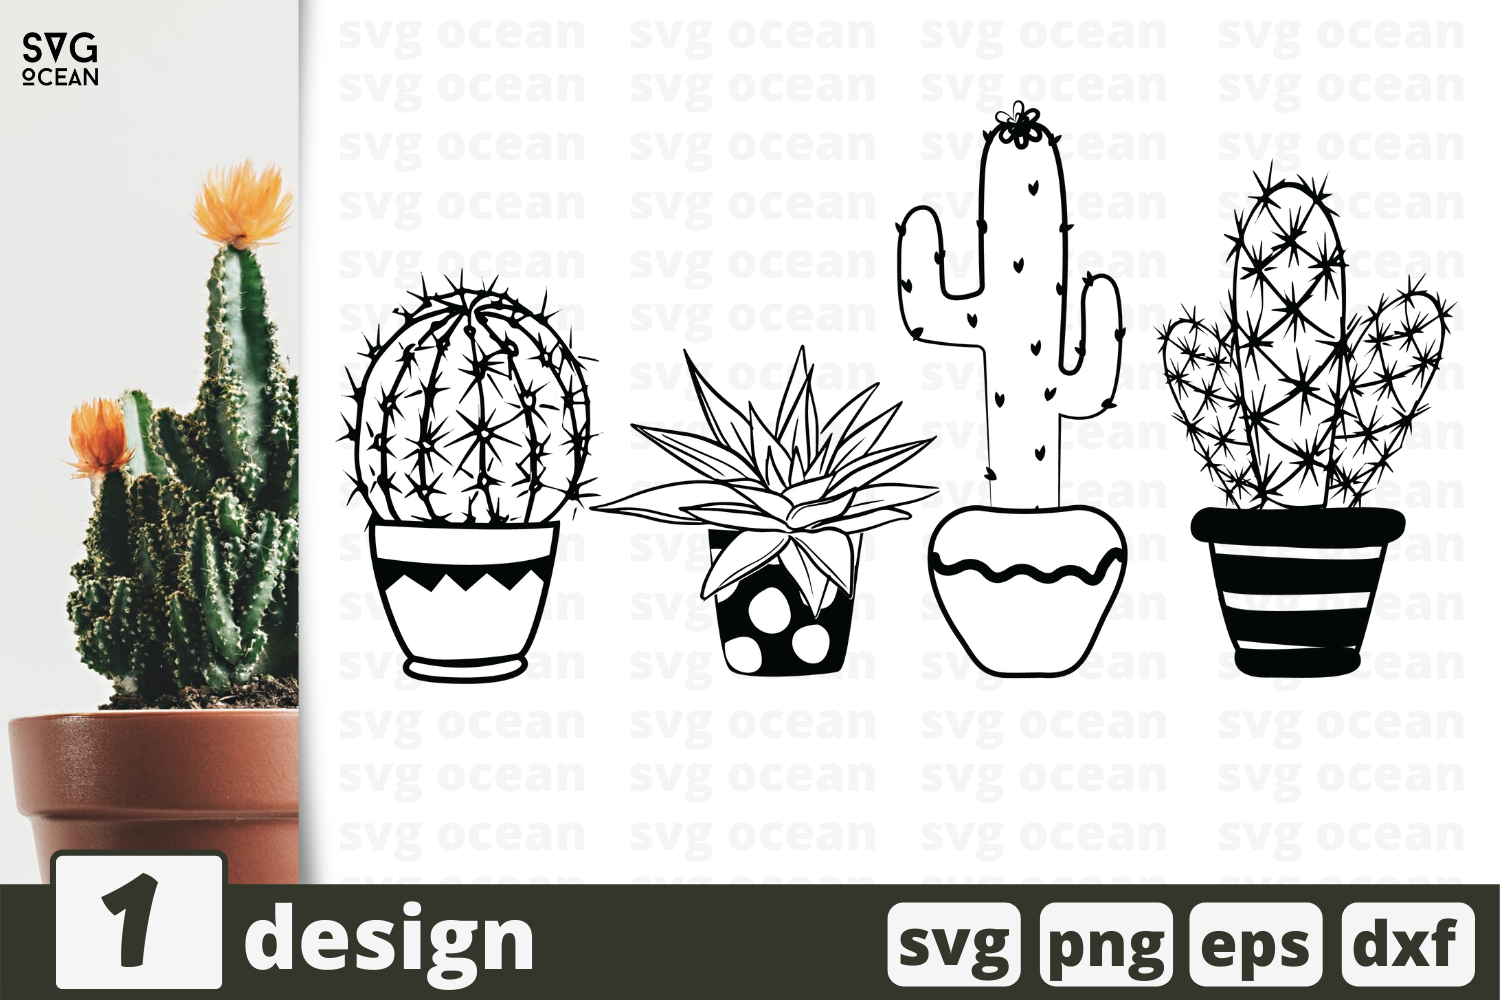 1 Cactus Svg Bundle Flower In A Pot Cricut Svg By Svgocean